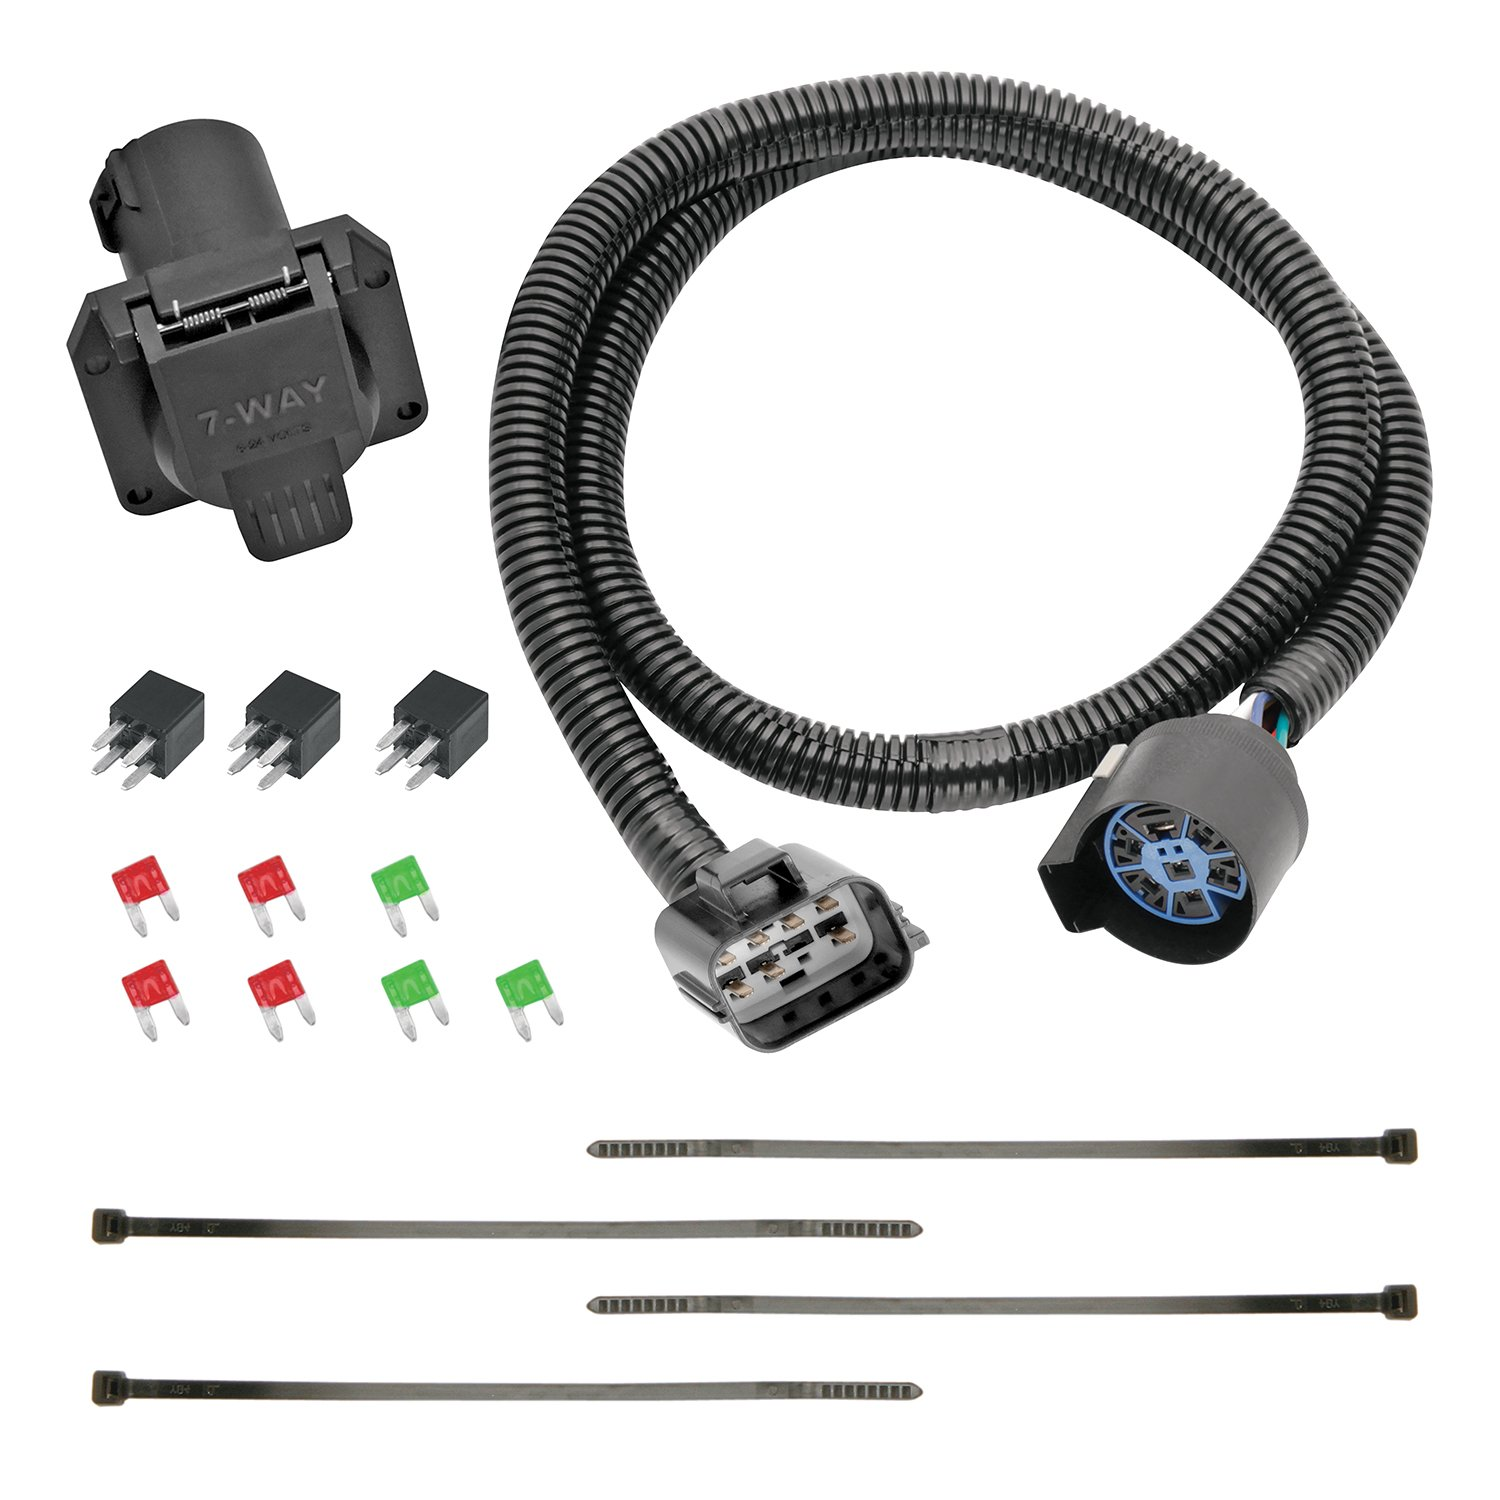 amazon com tekonsha 118271 7 way tow harness wiring package, 1 packamazon com tekonsha 118271 7 way tow harness wiring package, 1 pack automotive